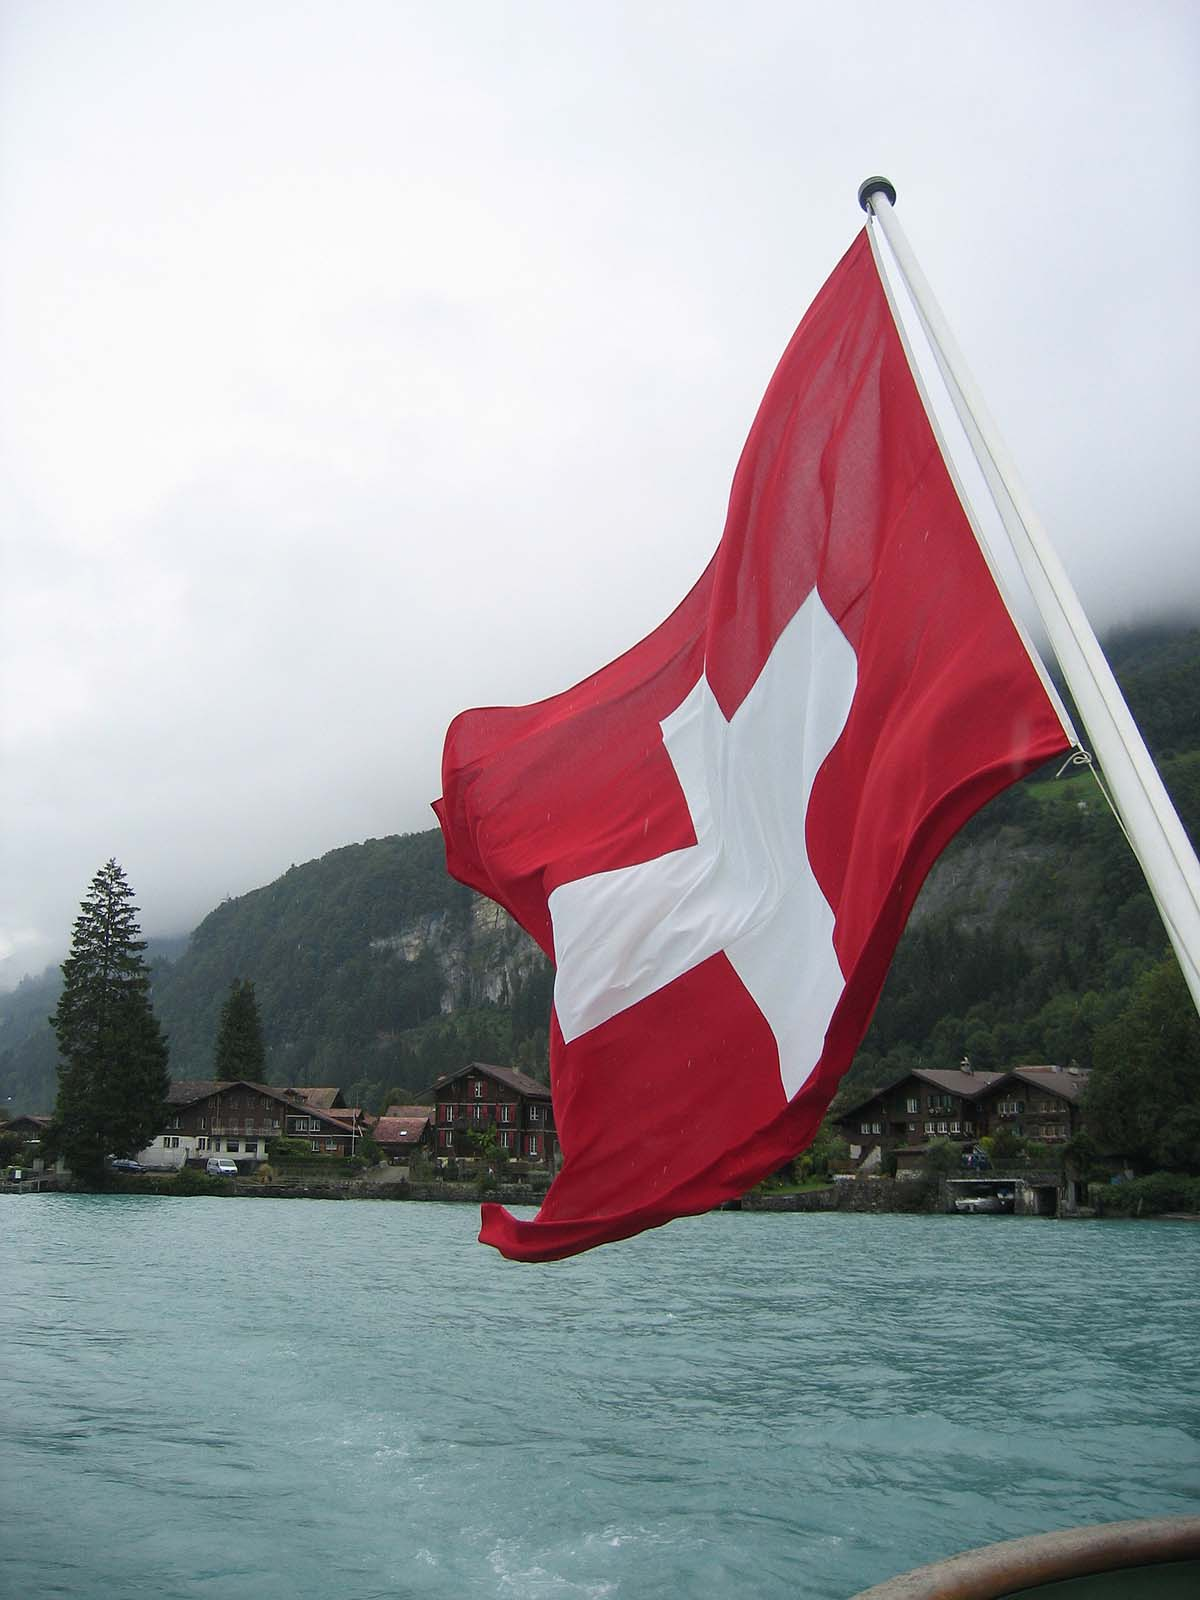 On Lake Brienz